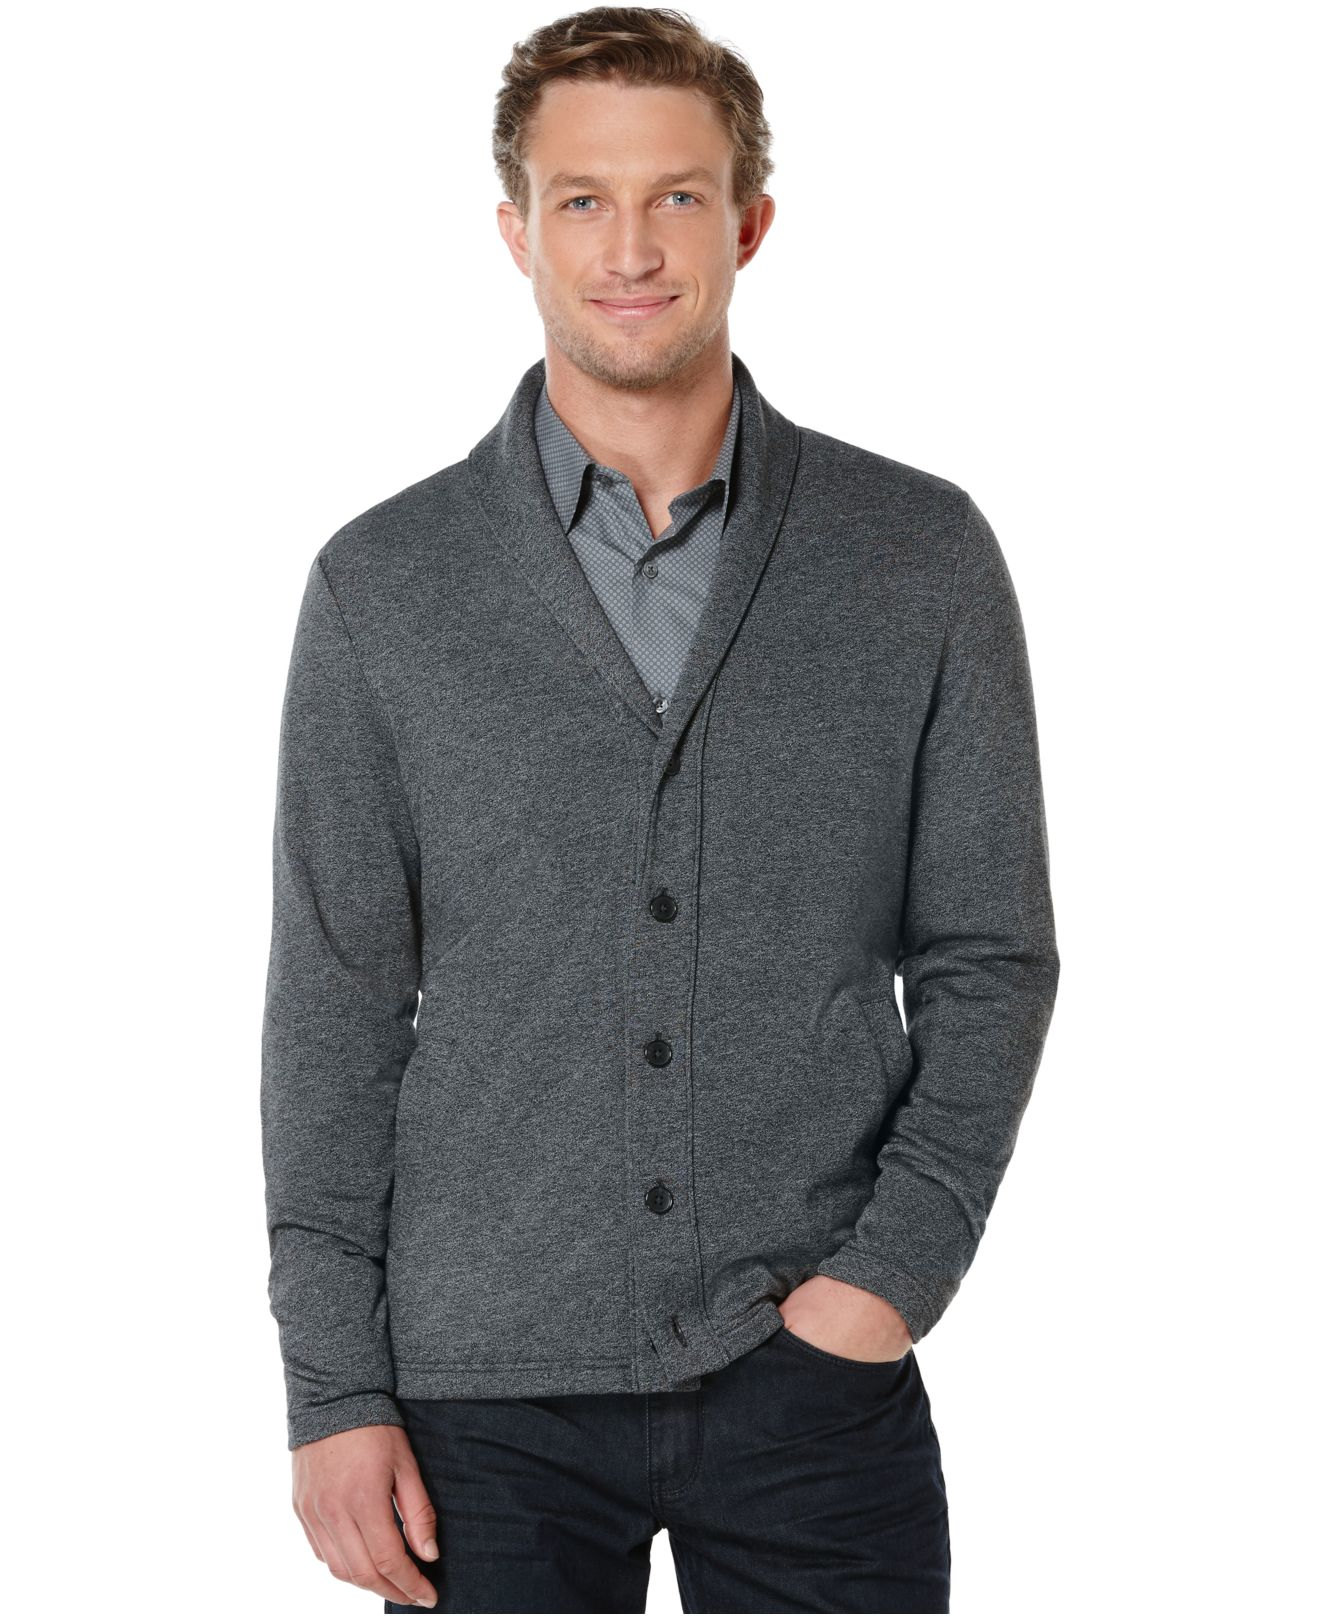 Perry ellis Shawl Collar Button-front Cardigan Sweater in Black ...